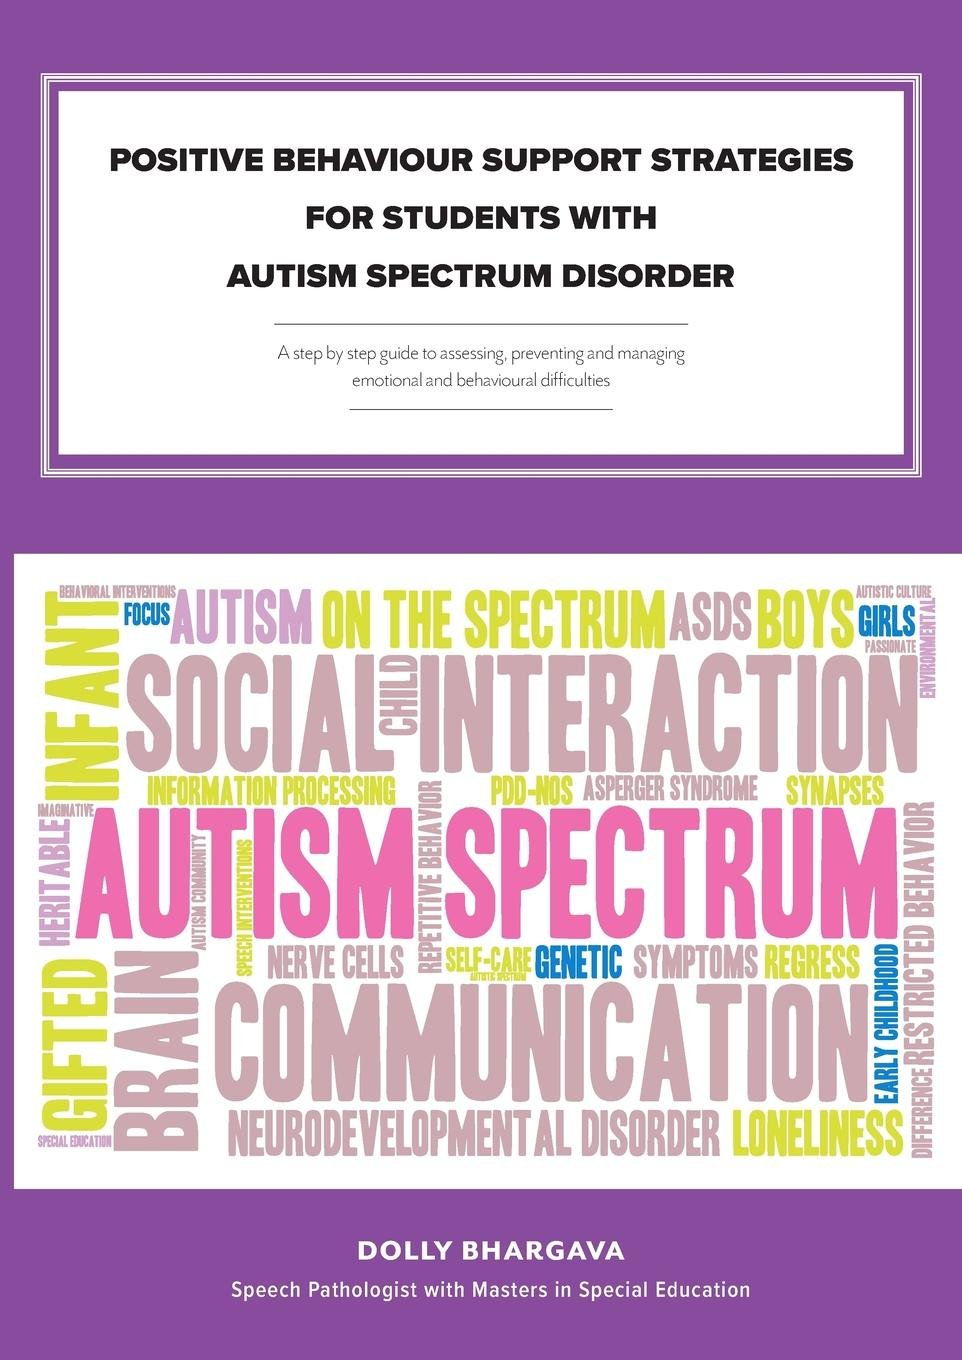 Positive Behaviour Support Strategies for Students with